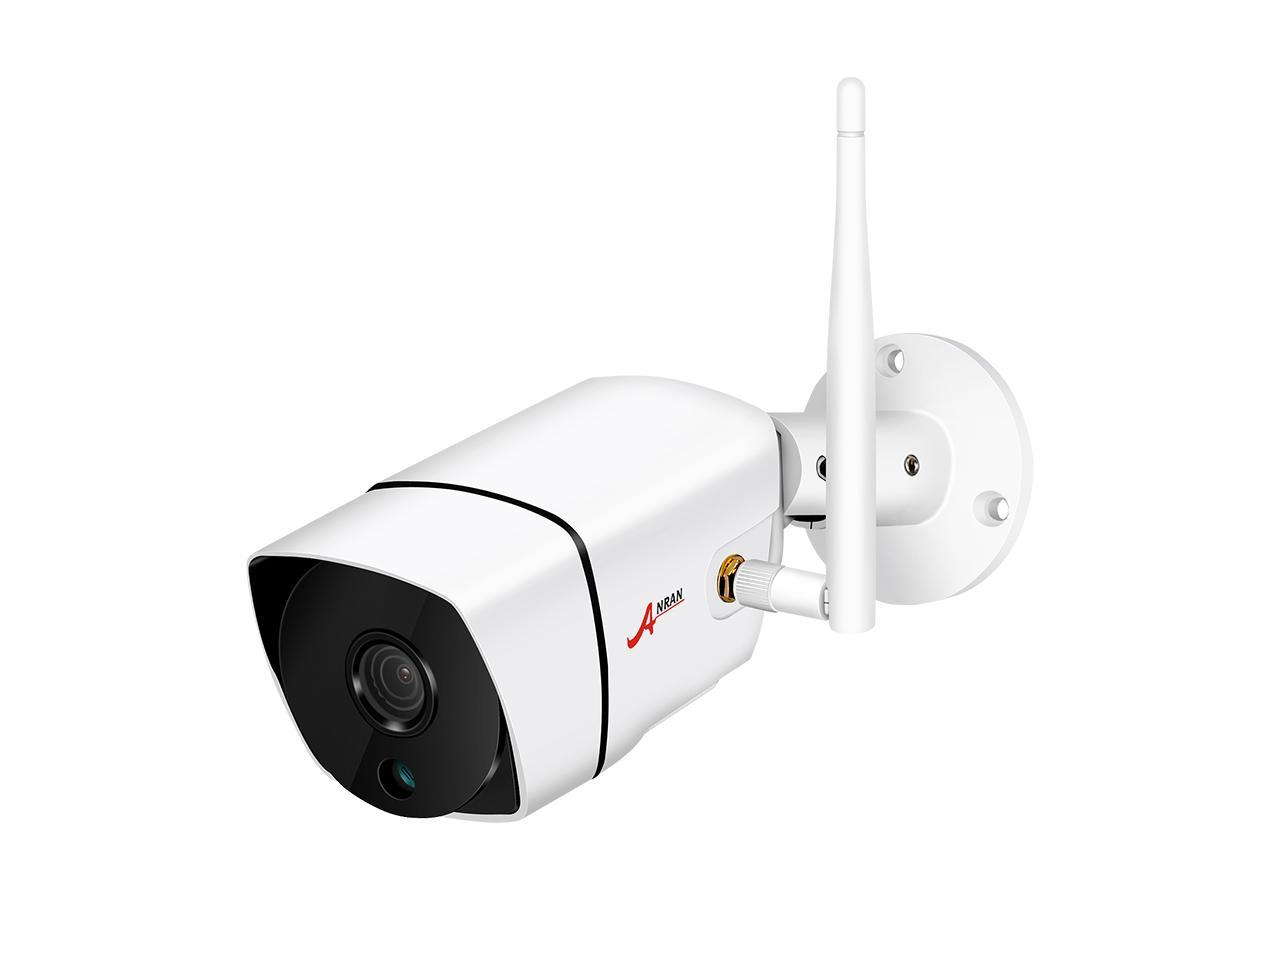 Anran 1080P Wifi IP Surveillance Camera (More Options)